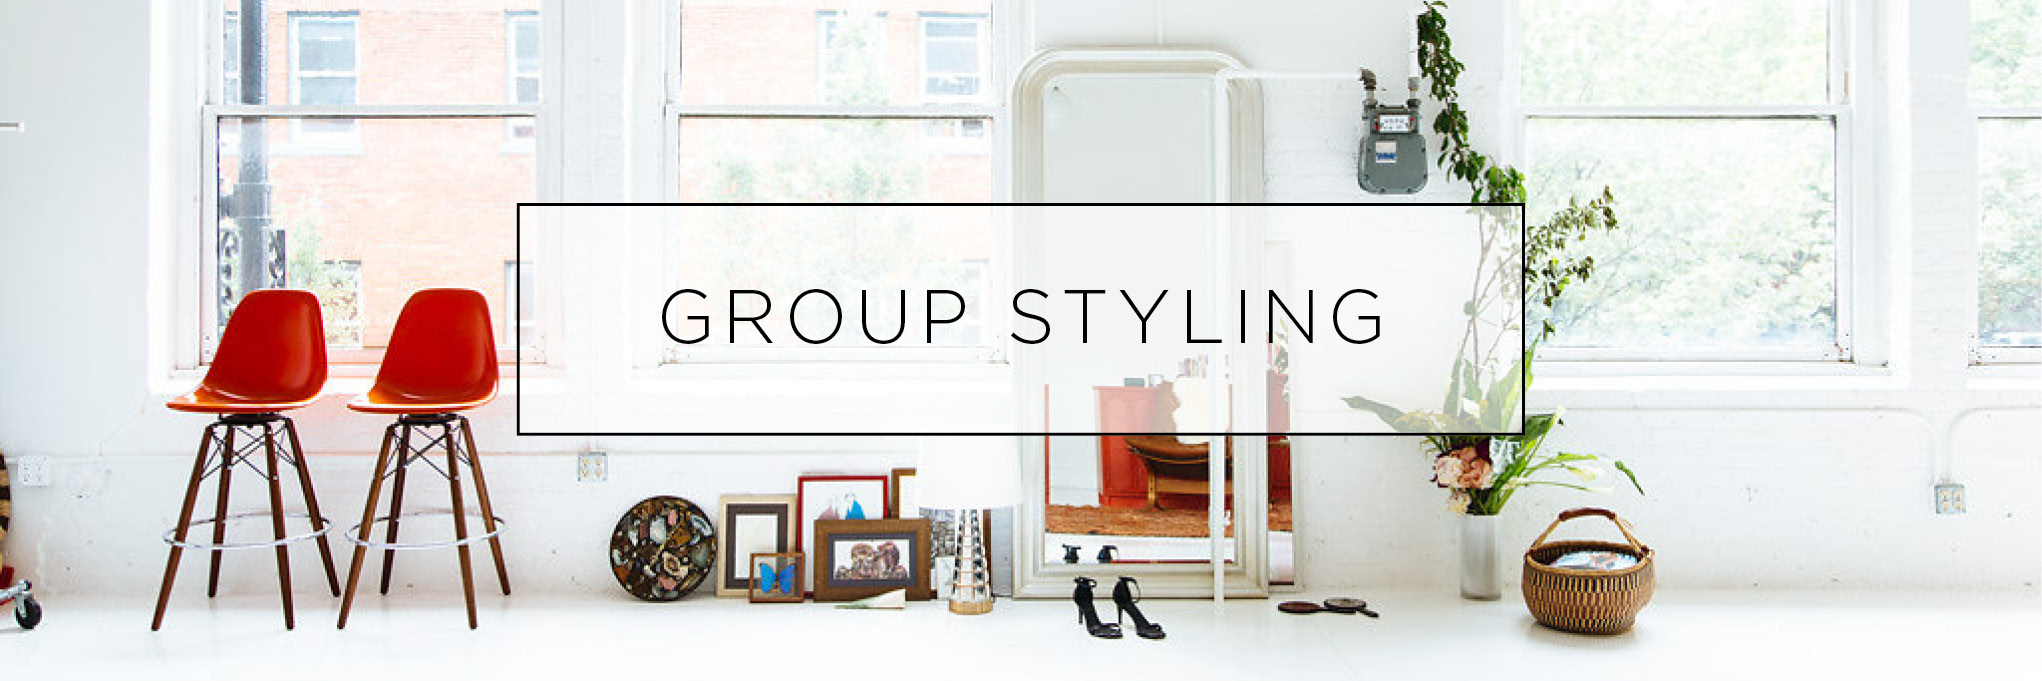 BANNER_GROUP STYLING